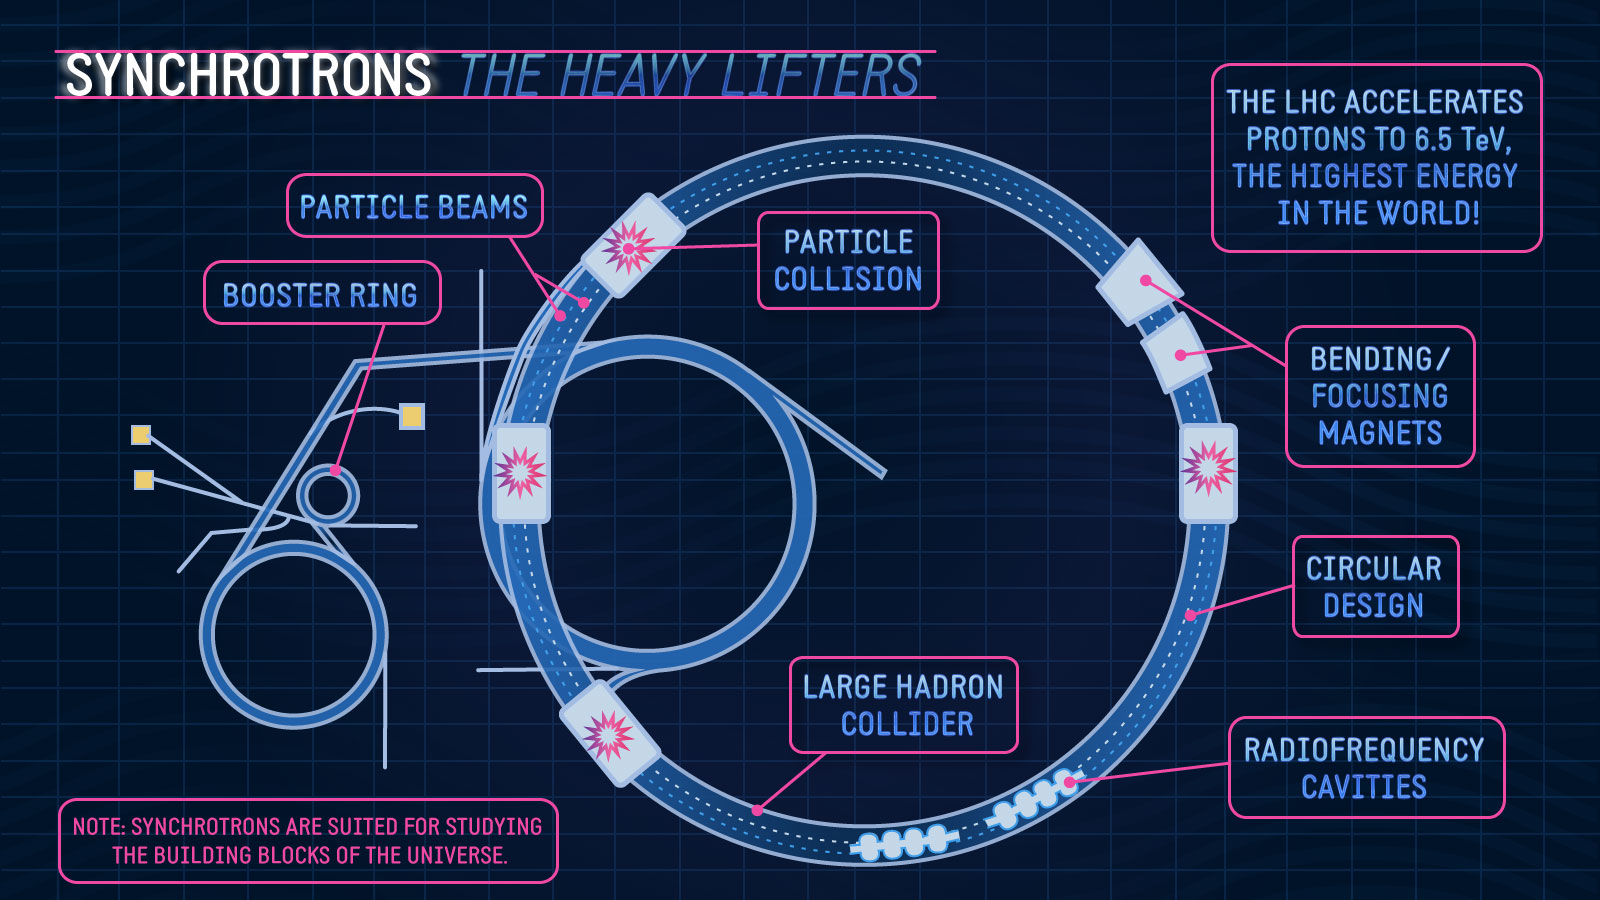 synchrotrons - the heavy lifters of particle physics